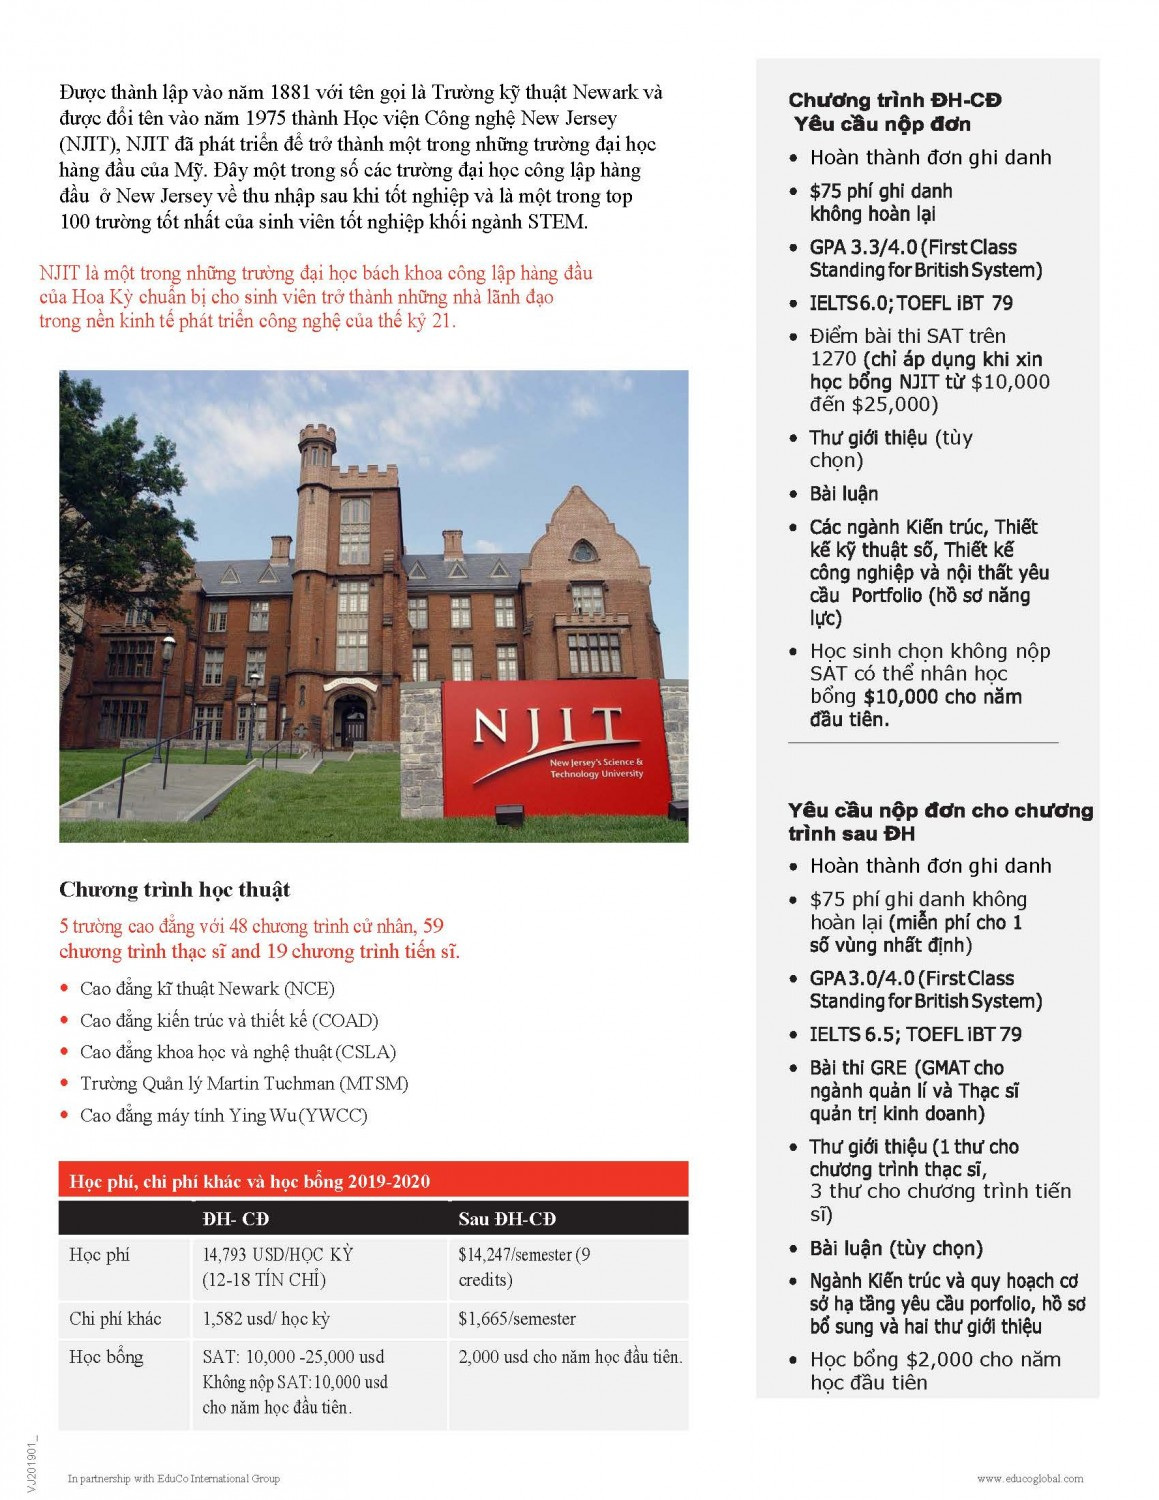 njit selling points page 2